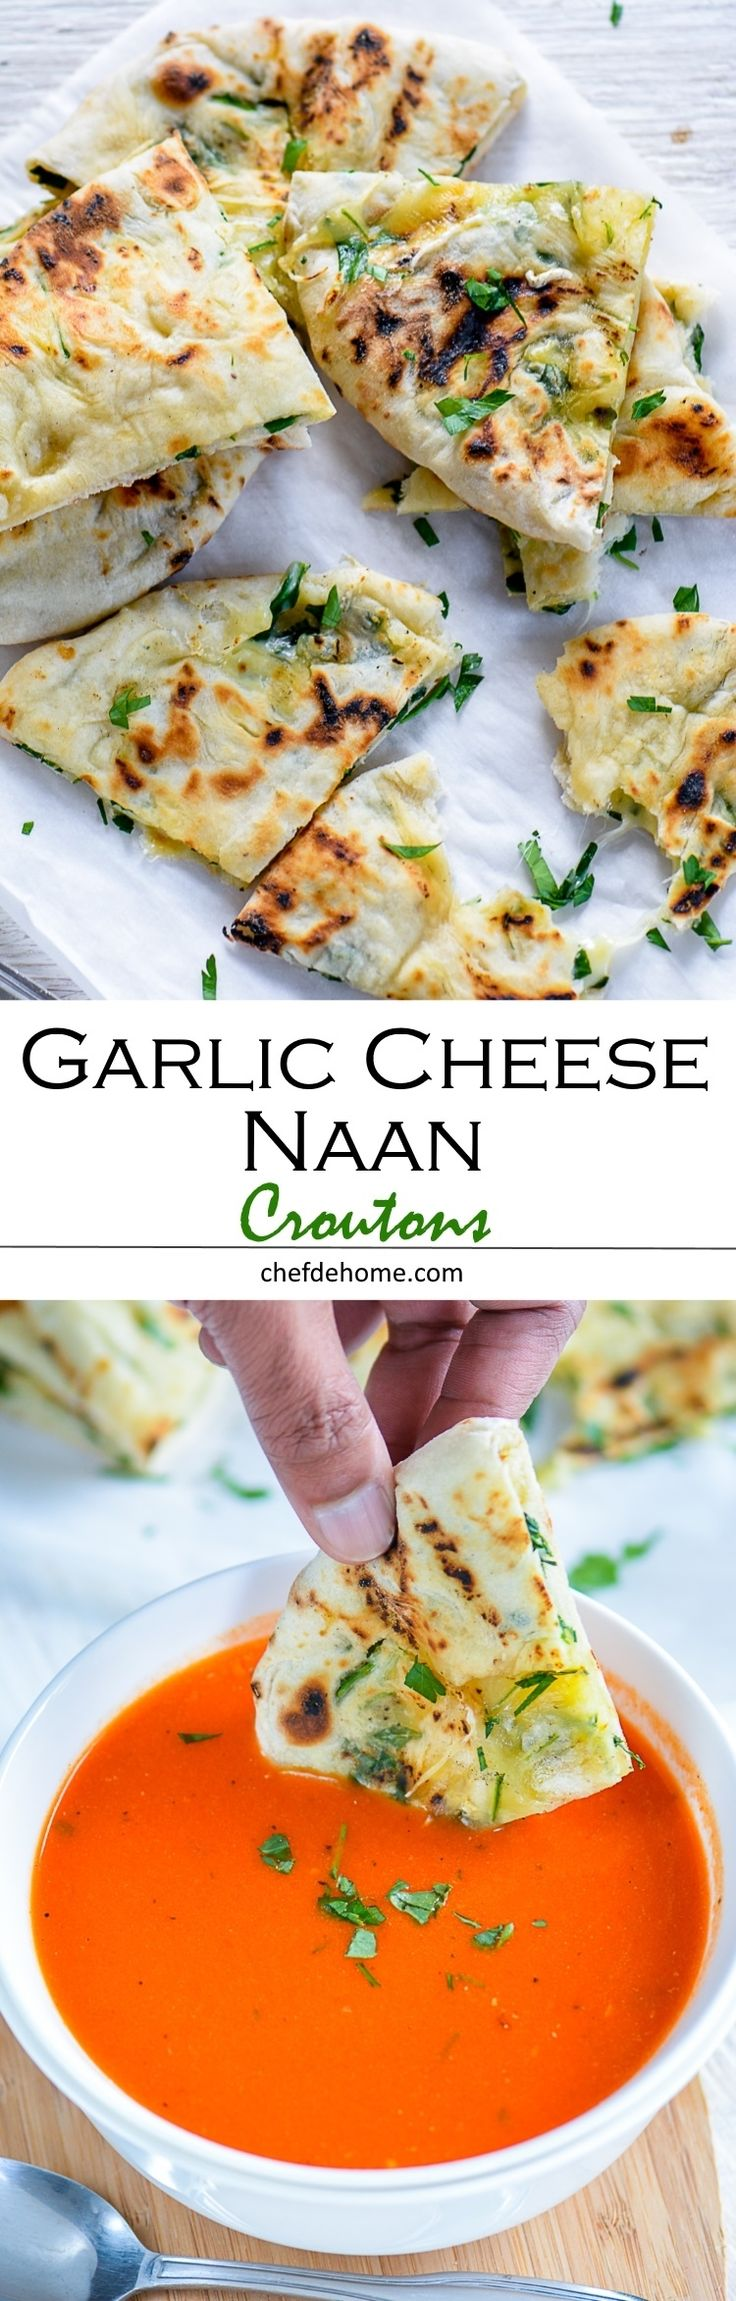 "Forget grilled cheese croutons! Try ""Pan Grilled Garlic Cheese Naan Croutons"", a new cheesy bread to soak into your favorite soup! (Cheese Snacks)"